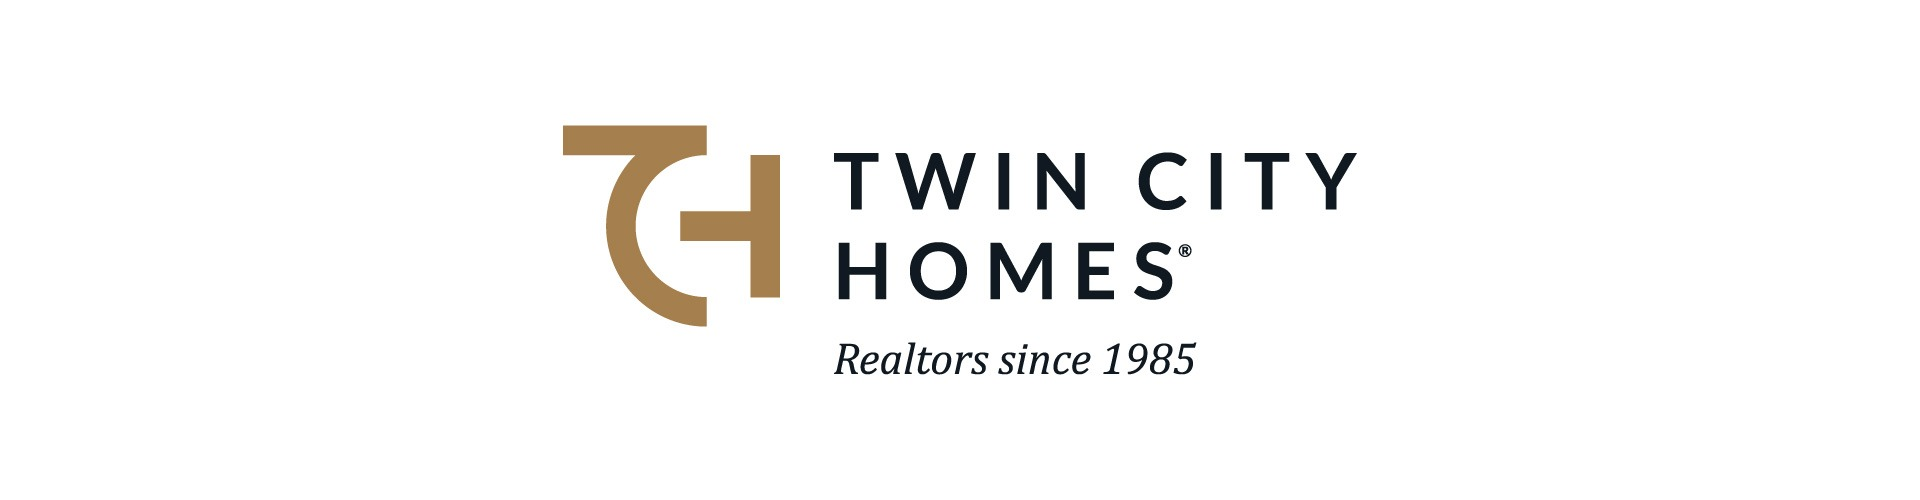 Twin City Homes logo in horizontal format with tagline